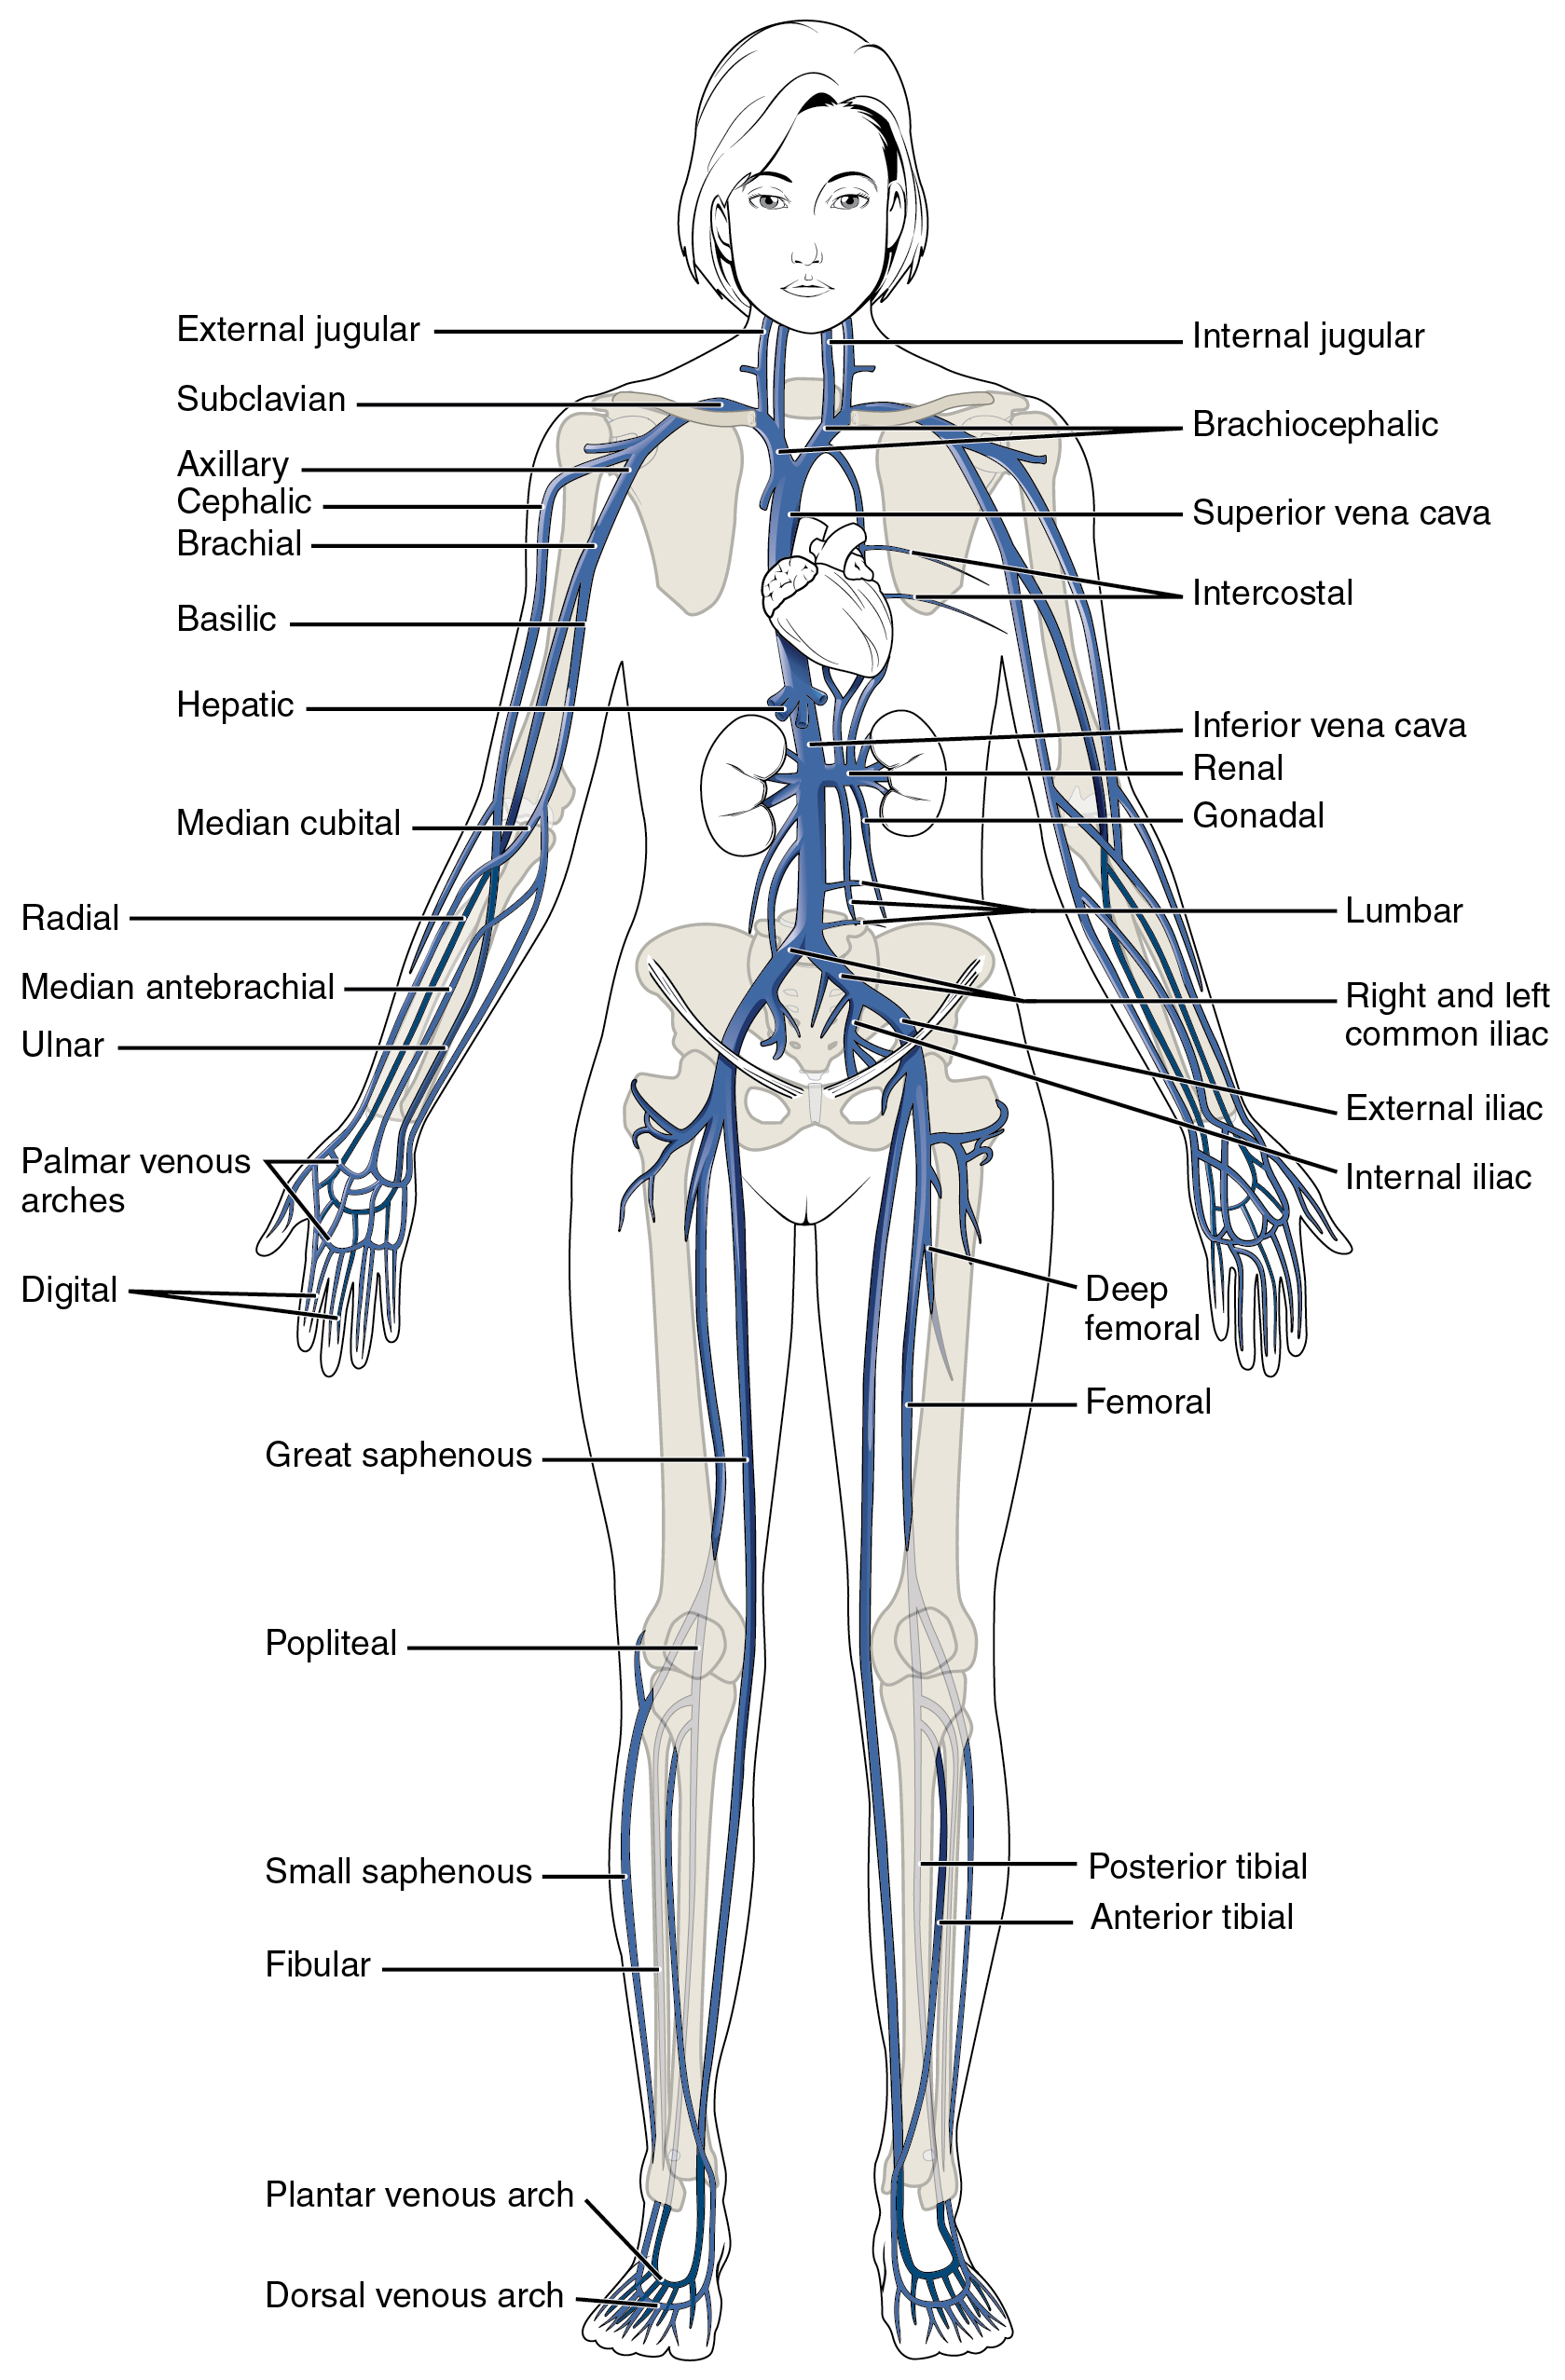 Free Worksheets chapter 11 the cardiovascular system worksheet answers : Circulatory Pathways u00b7 Anatomy and Physiology